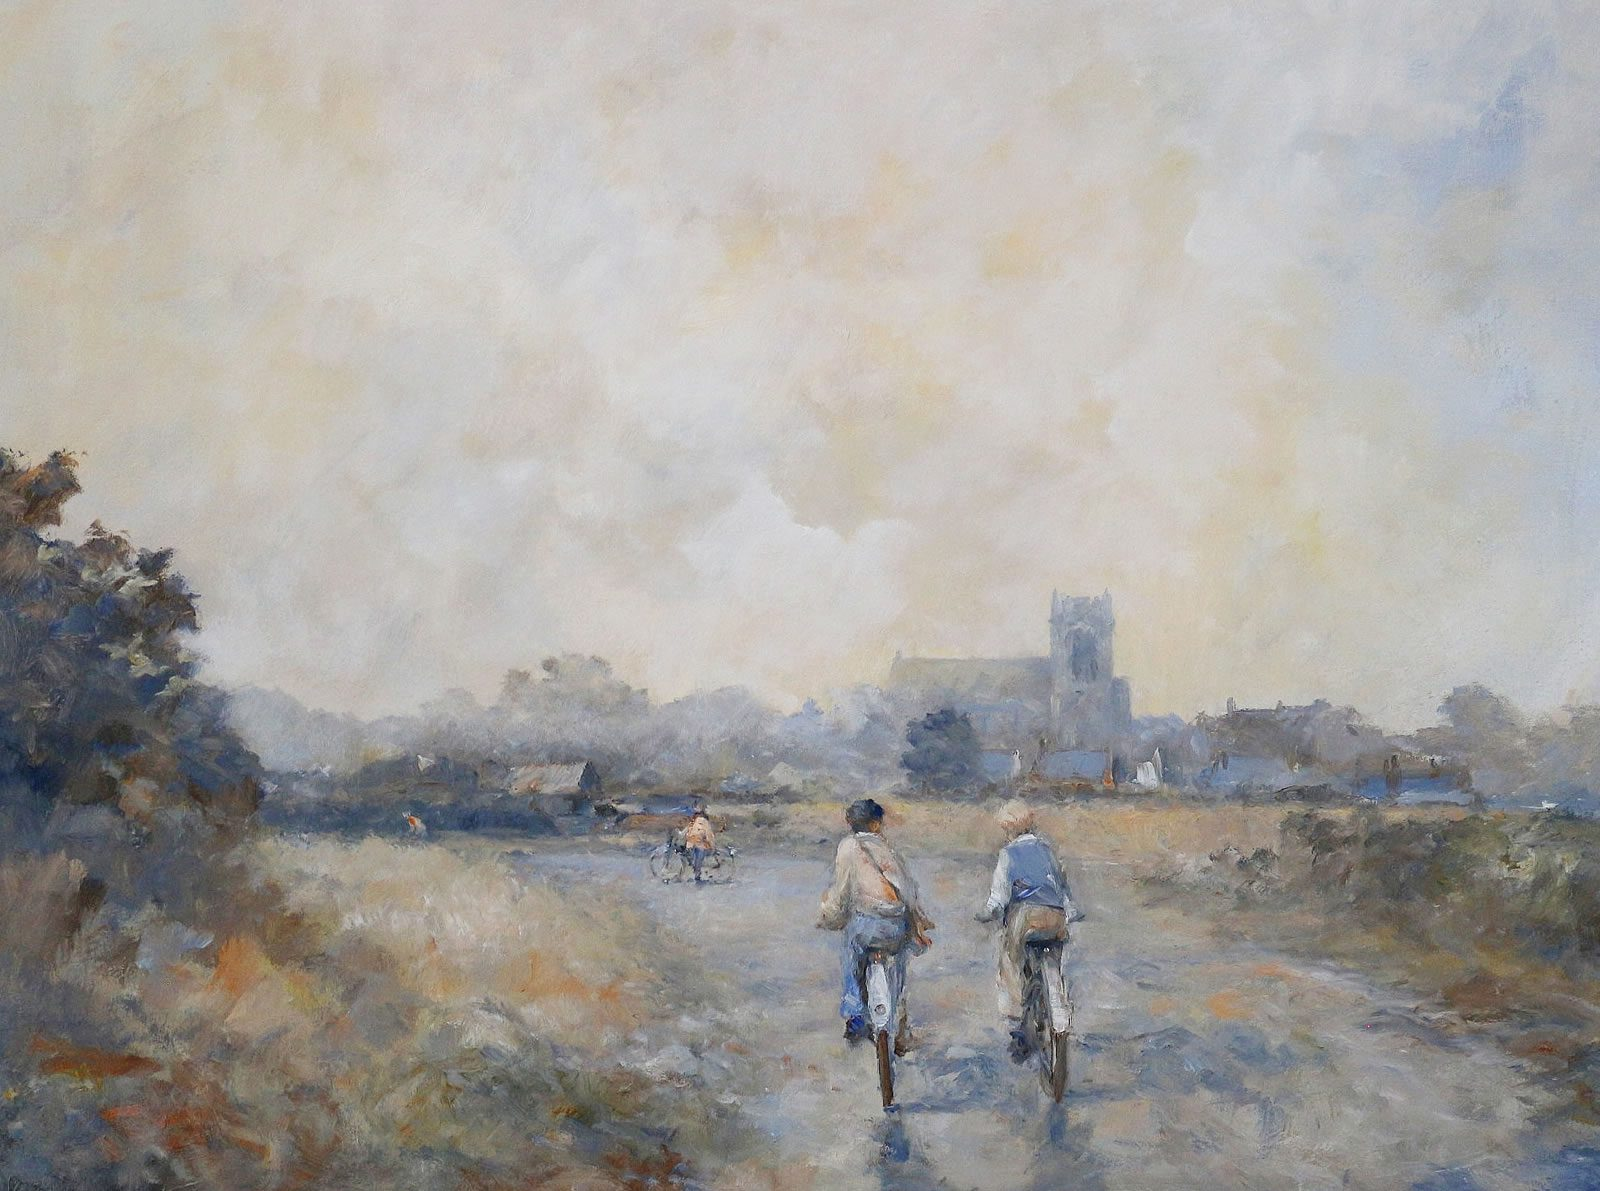 Oil painting of county scene with cyclists by Stewart Taylor